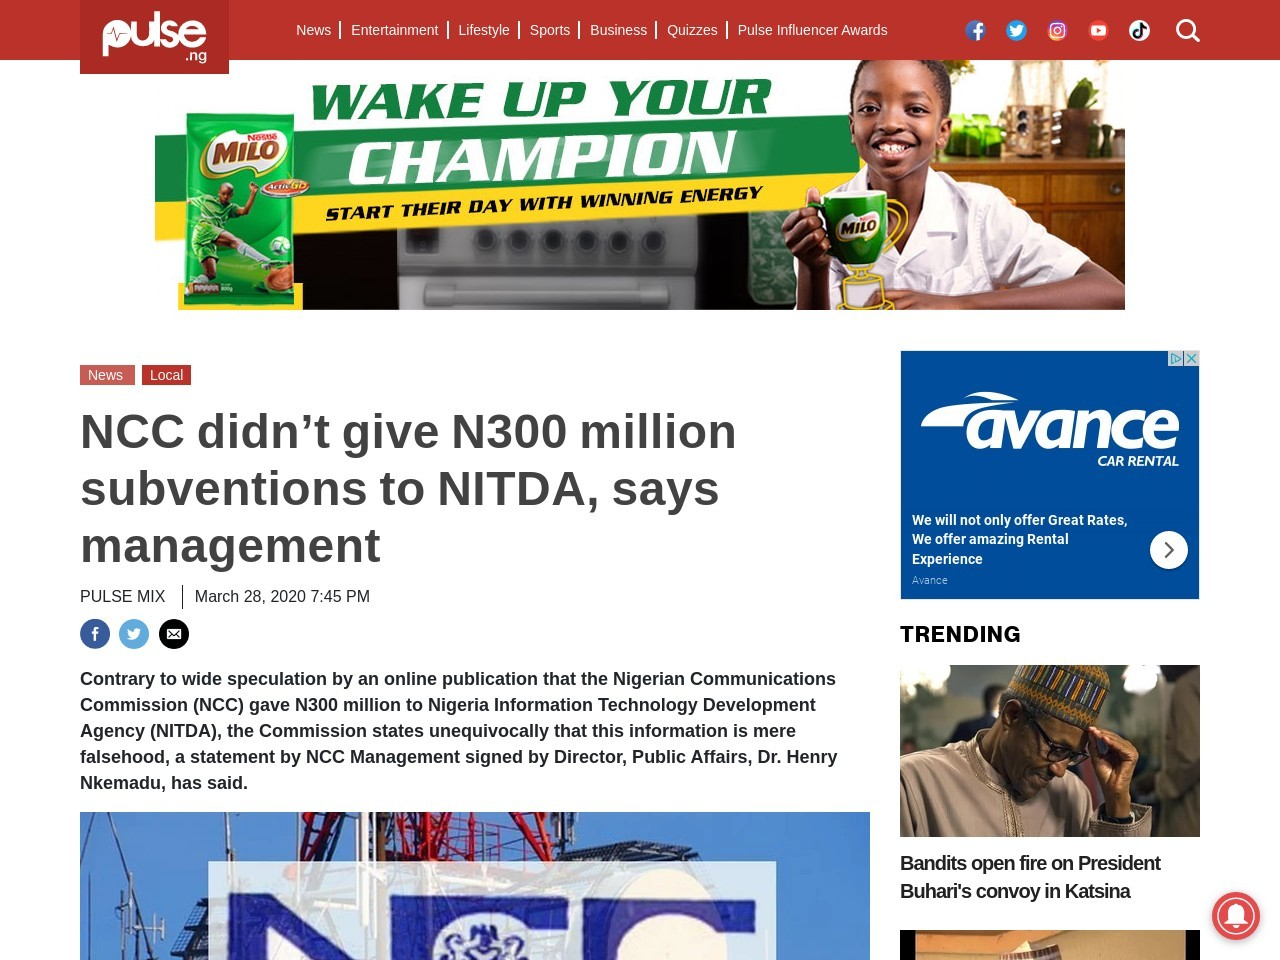 NCC didn't give N300 million subventions to NITDA, says management